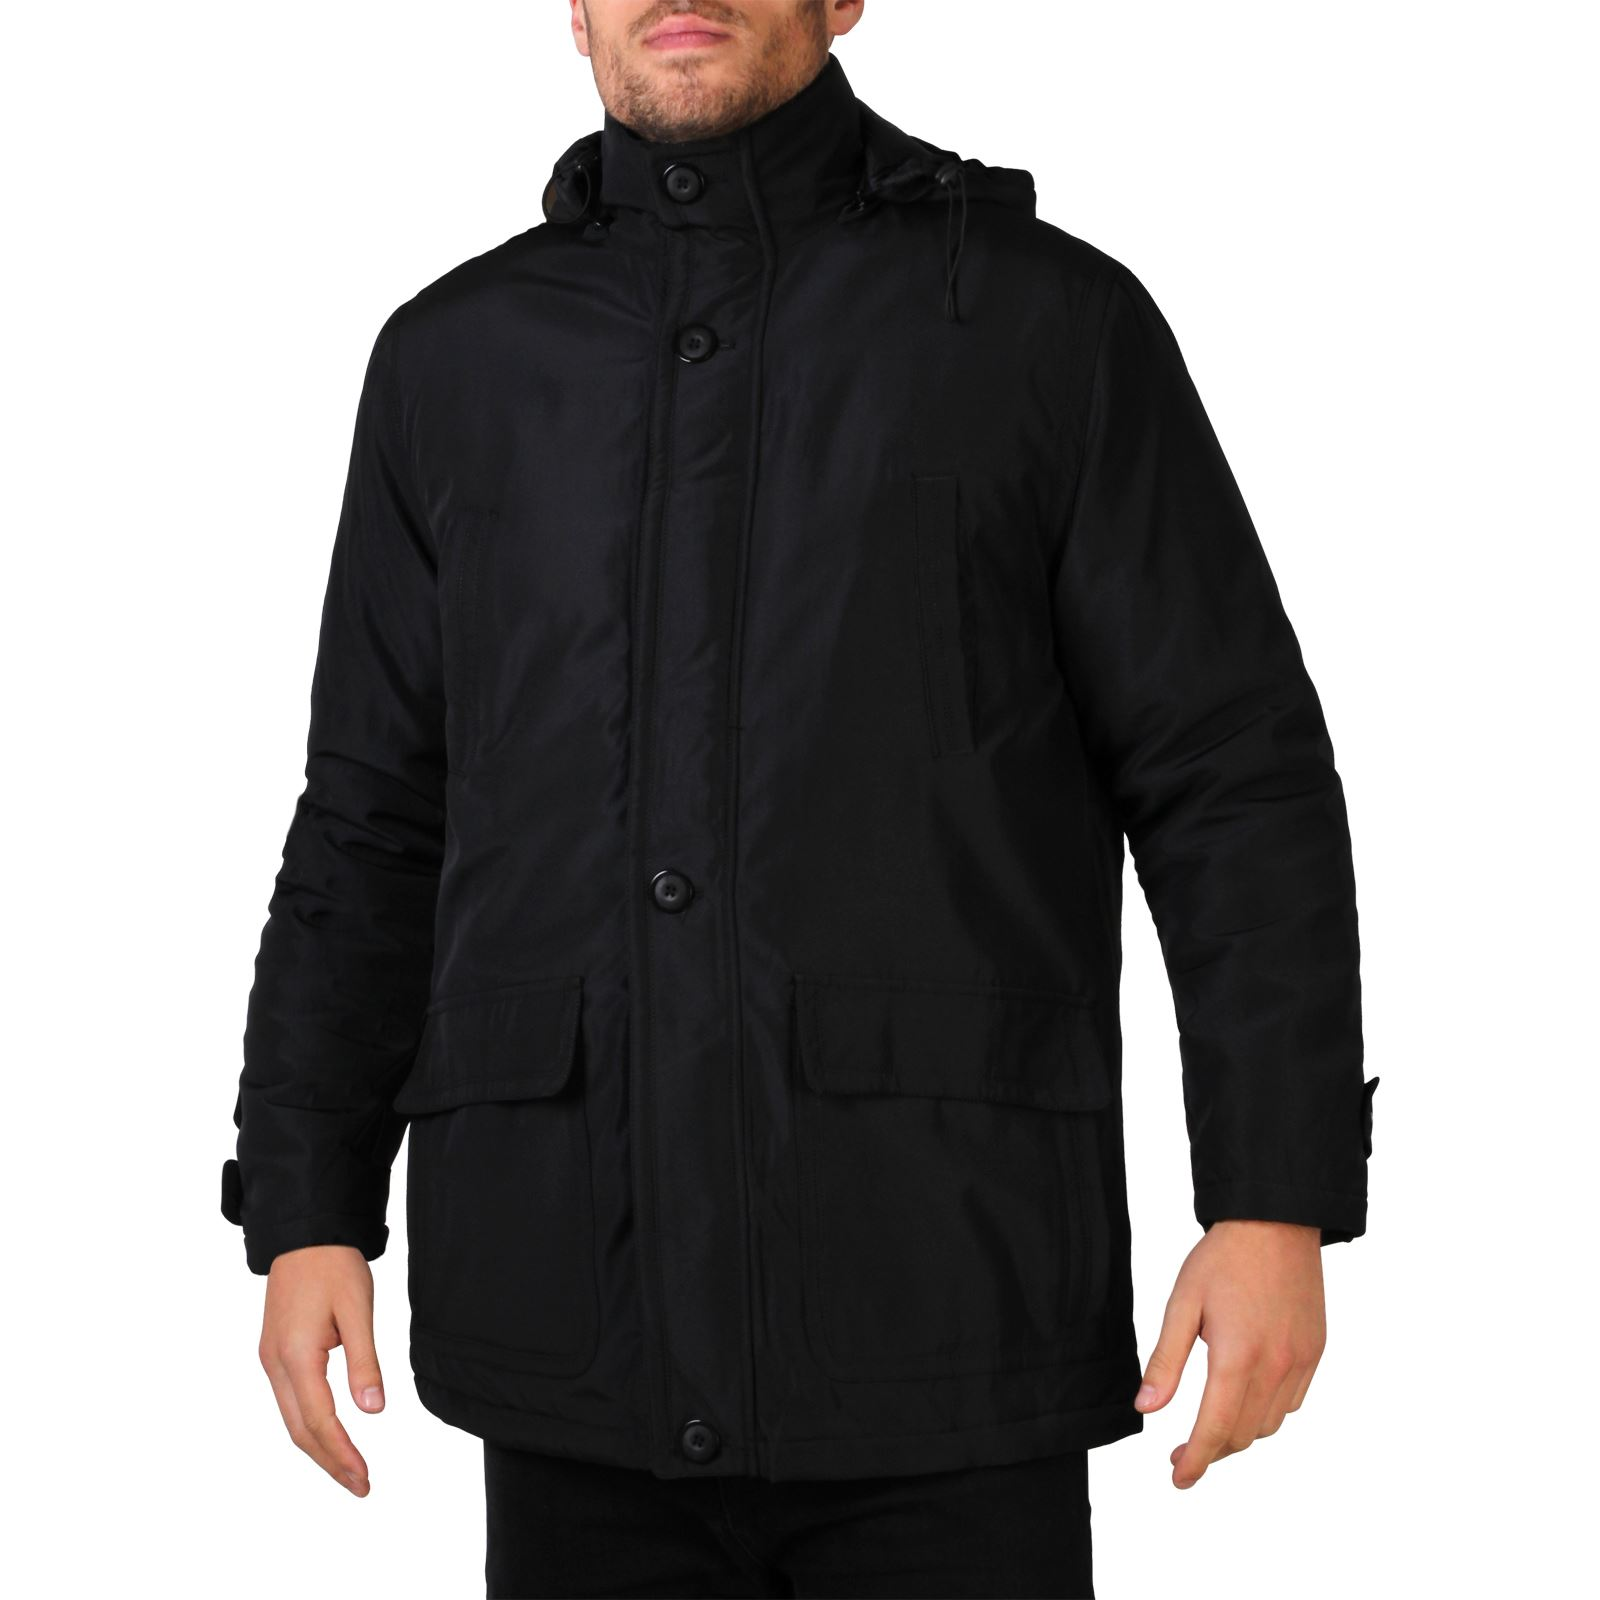 Find great deals on eBay for mens plus size jackets. Shop with confidence.